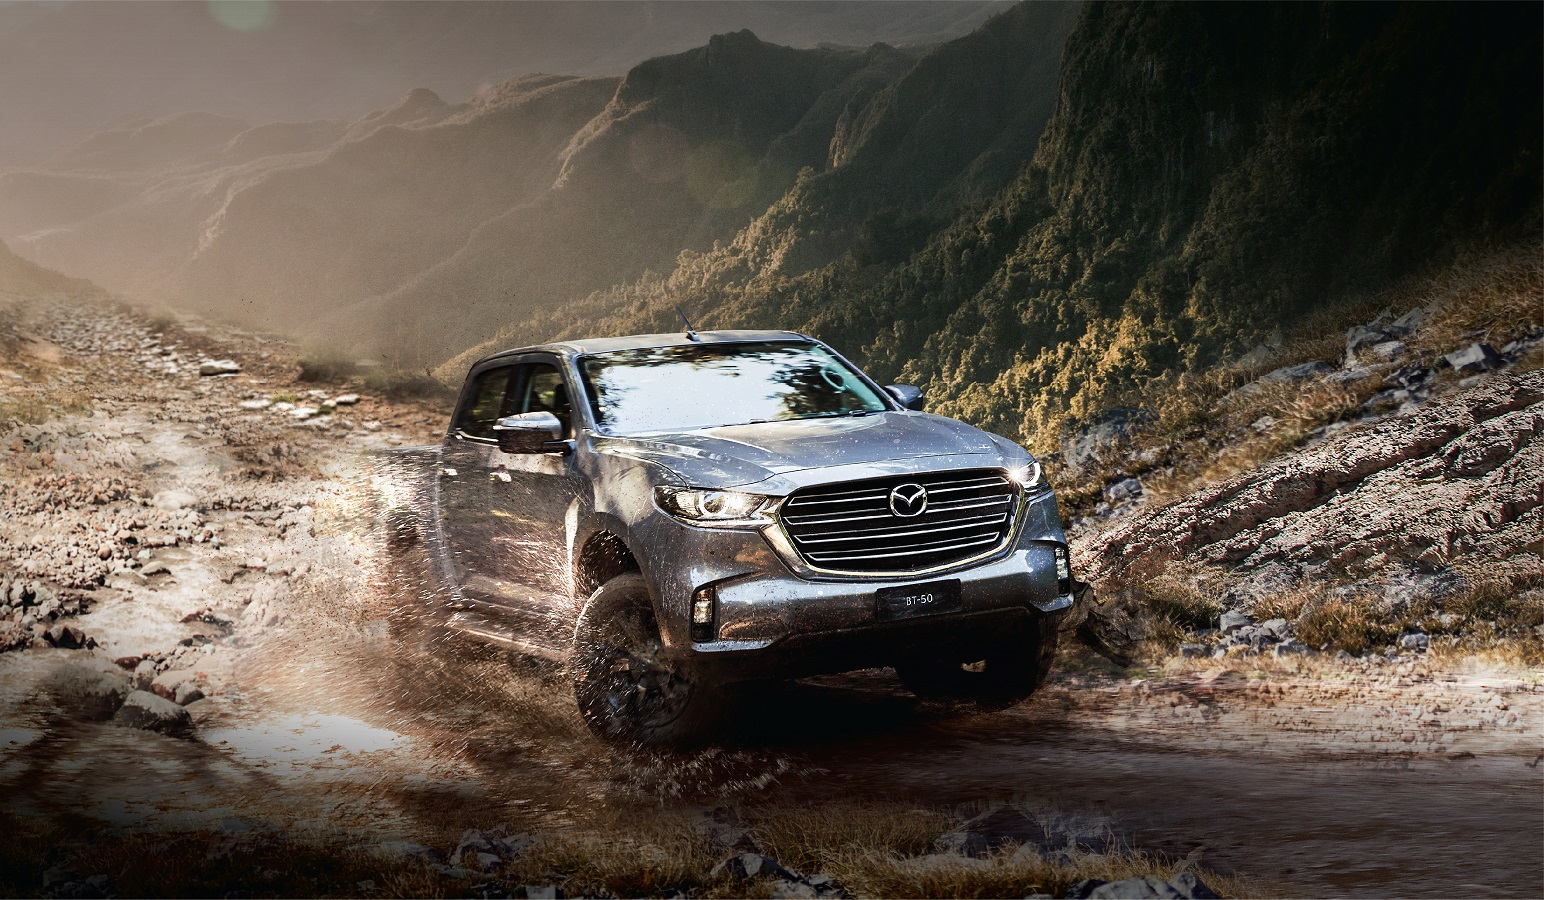 What's special about the new generation Mazda BT-50 coming to Vietnam?  mazda-bt-50-1.jpg